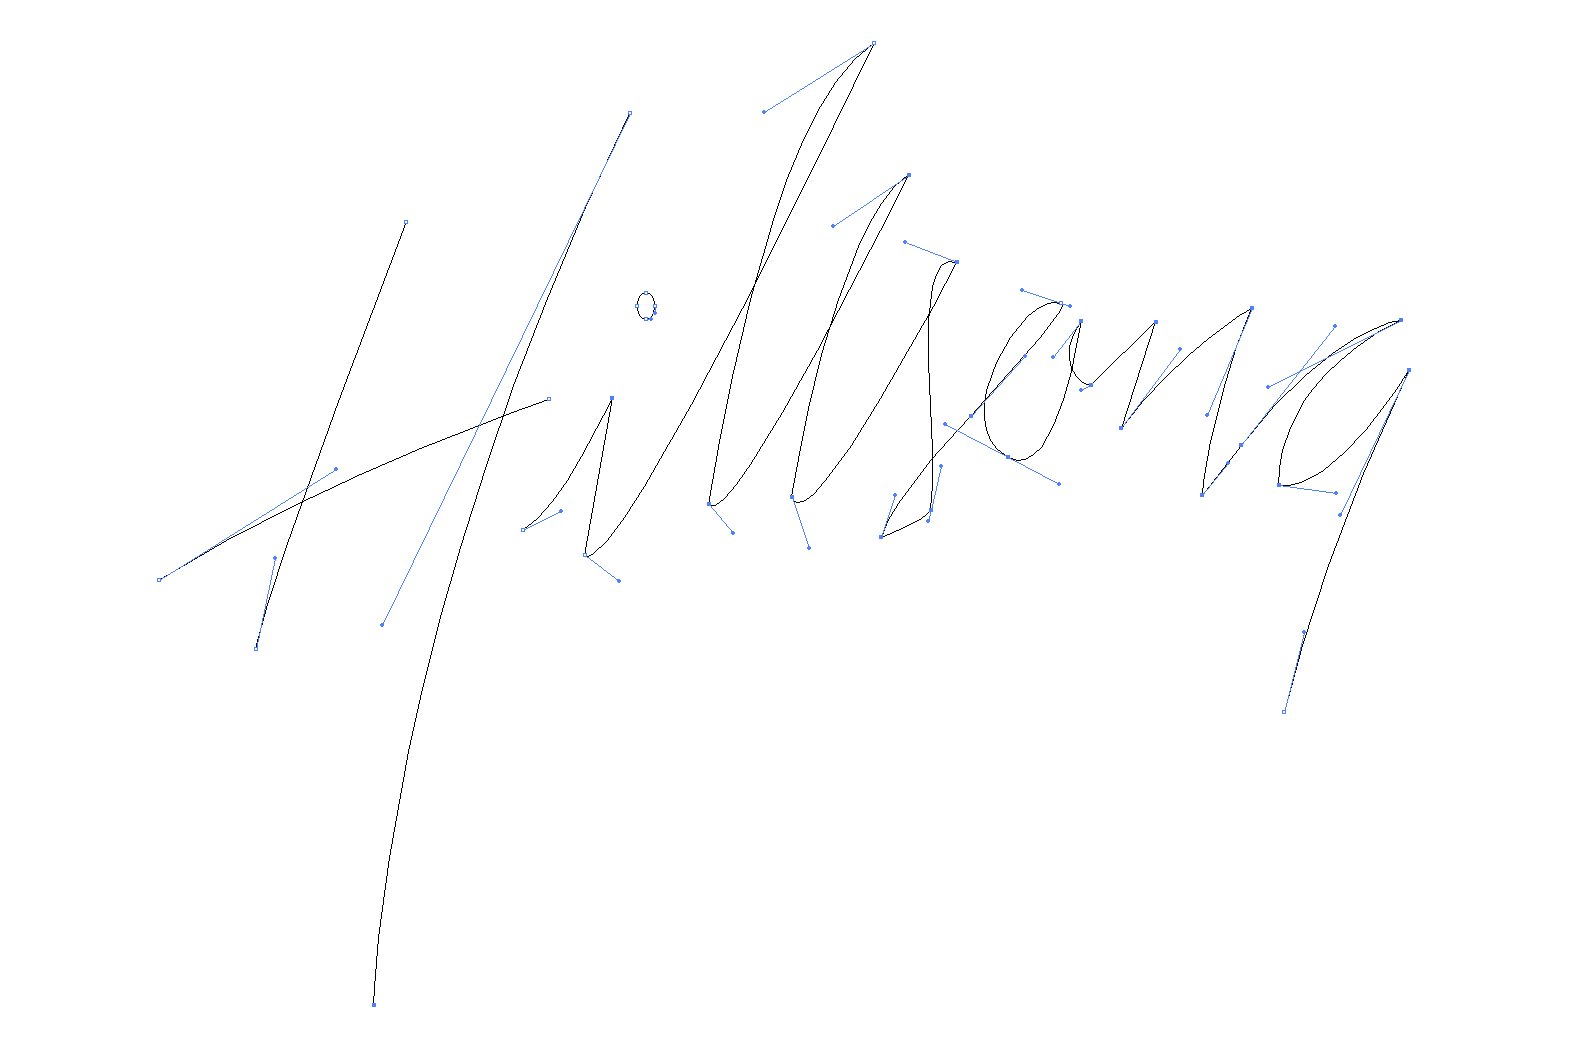 Original points and paths in FreeHand - traced by Chris